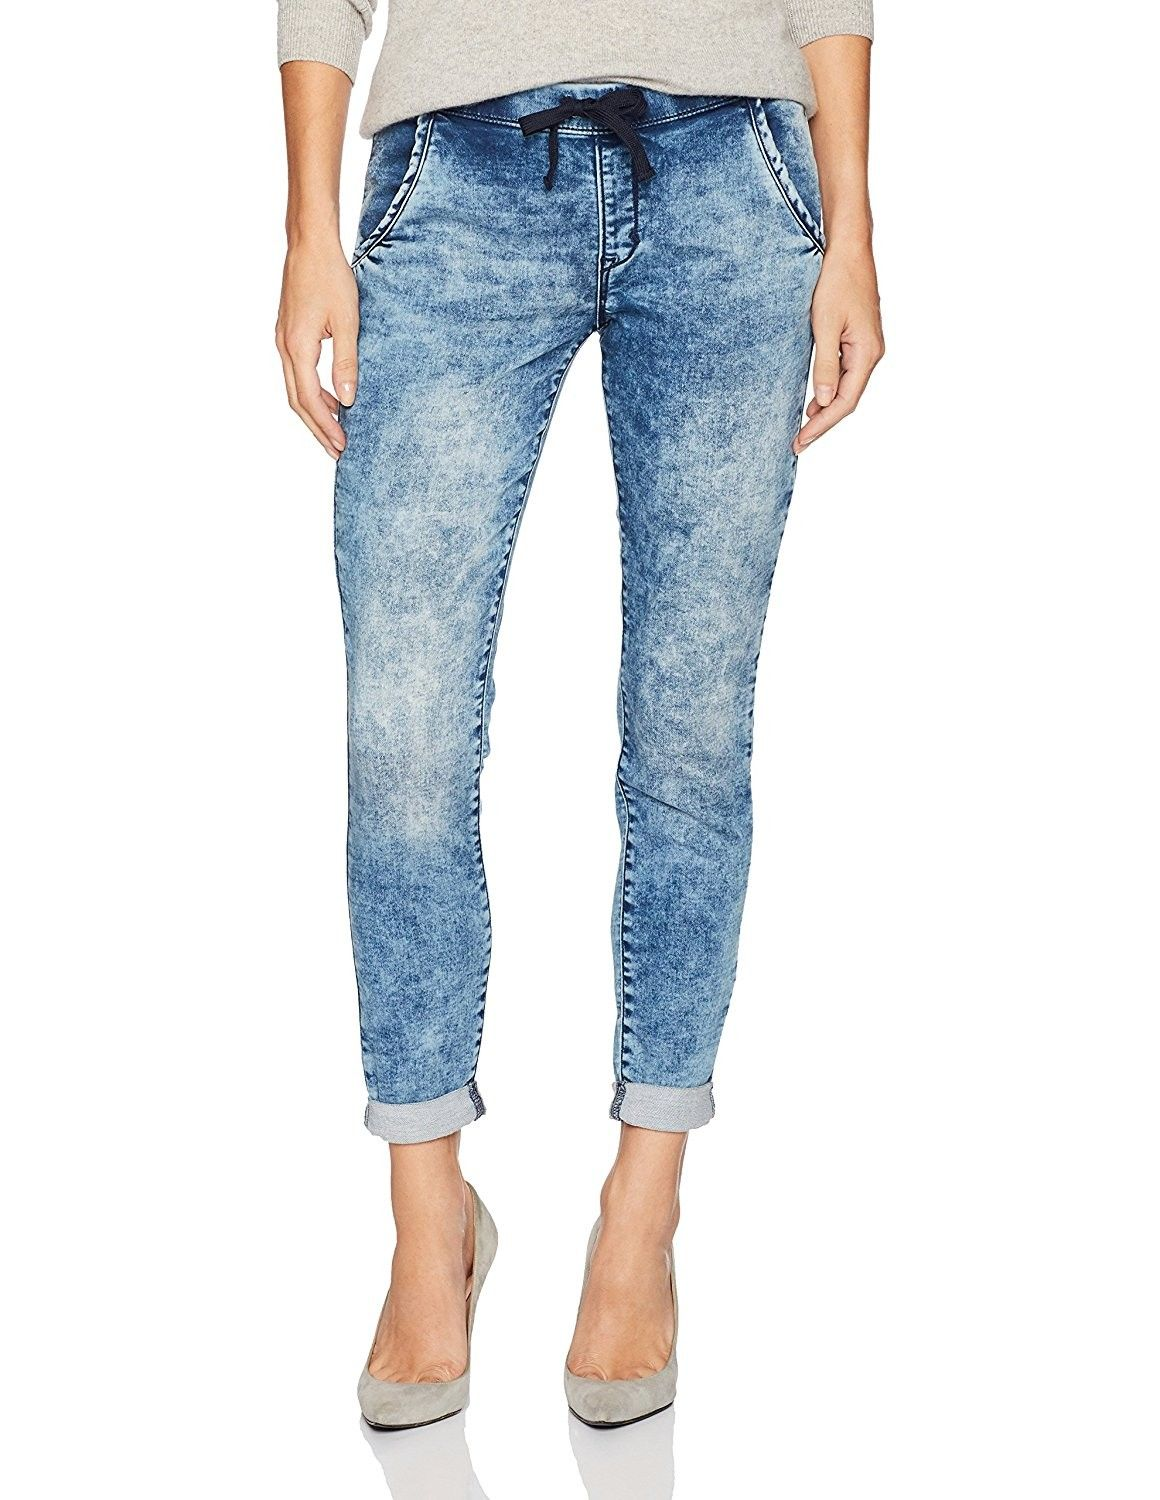 0d90edea90bc6 Women's Clothing, Jeans, Signature by Levi Strauss & Co. Gold Label Women's  Low Rise Jogger - Jasmine - CD184CQRWG5 #fashion #Jeans #women #outfits  #pants